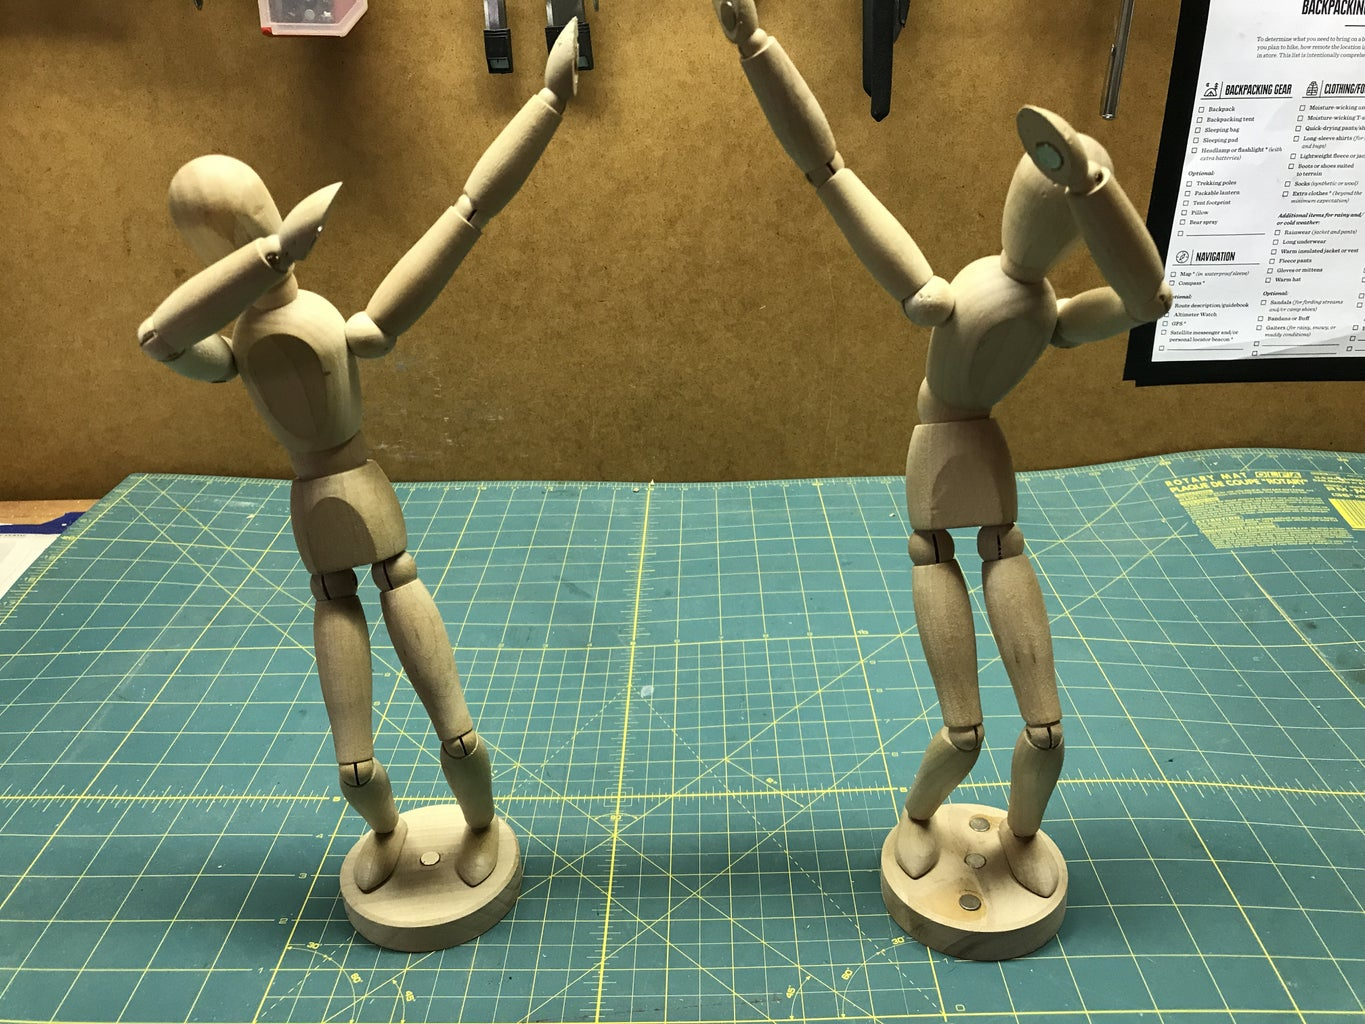 Have Fun With Your Magnetic Figure!